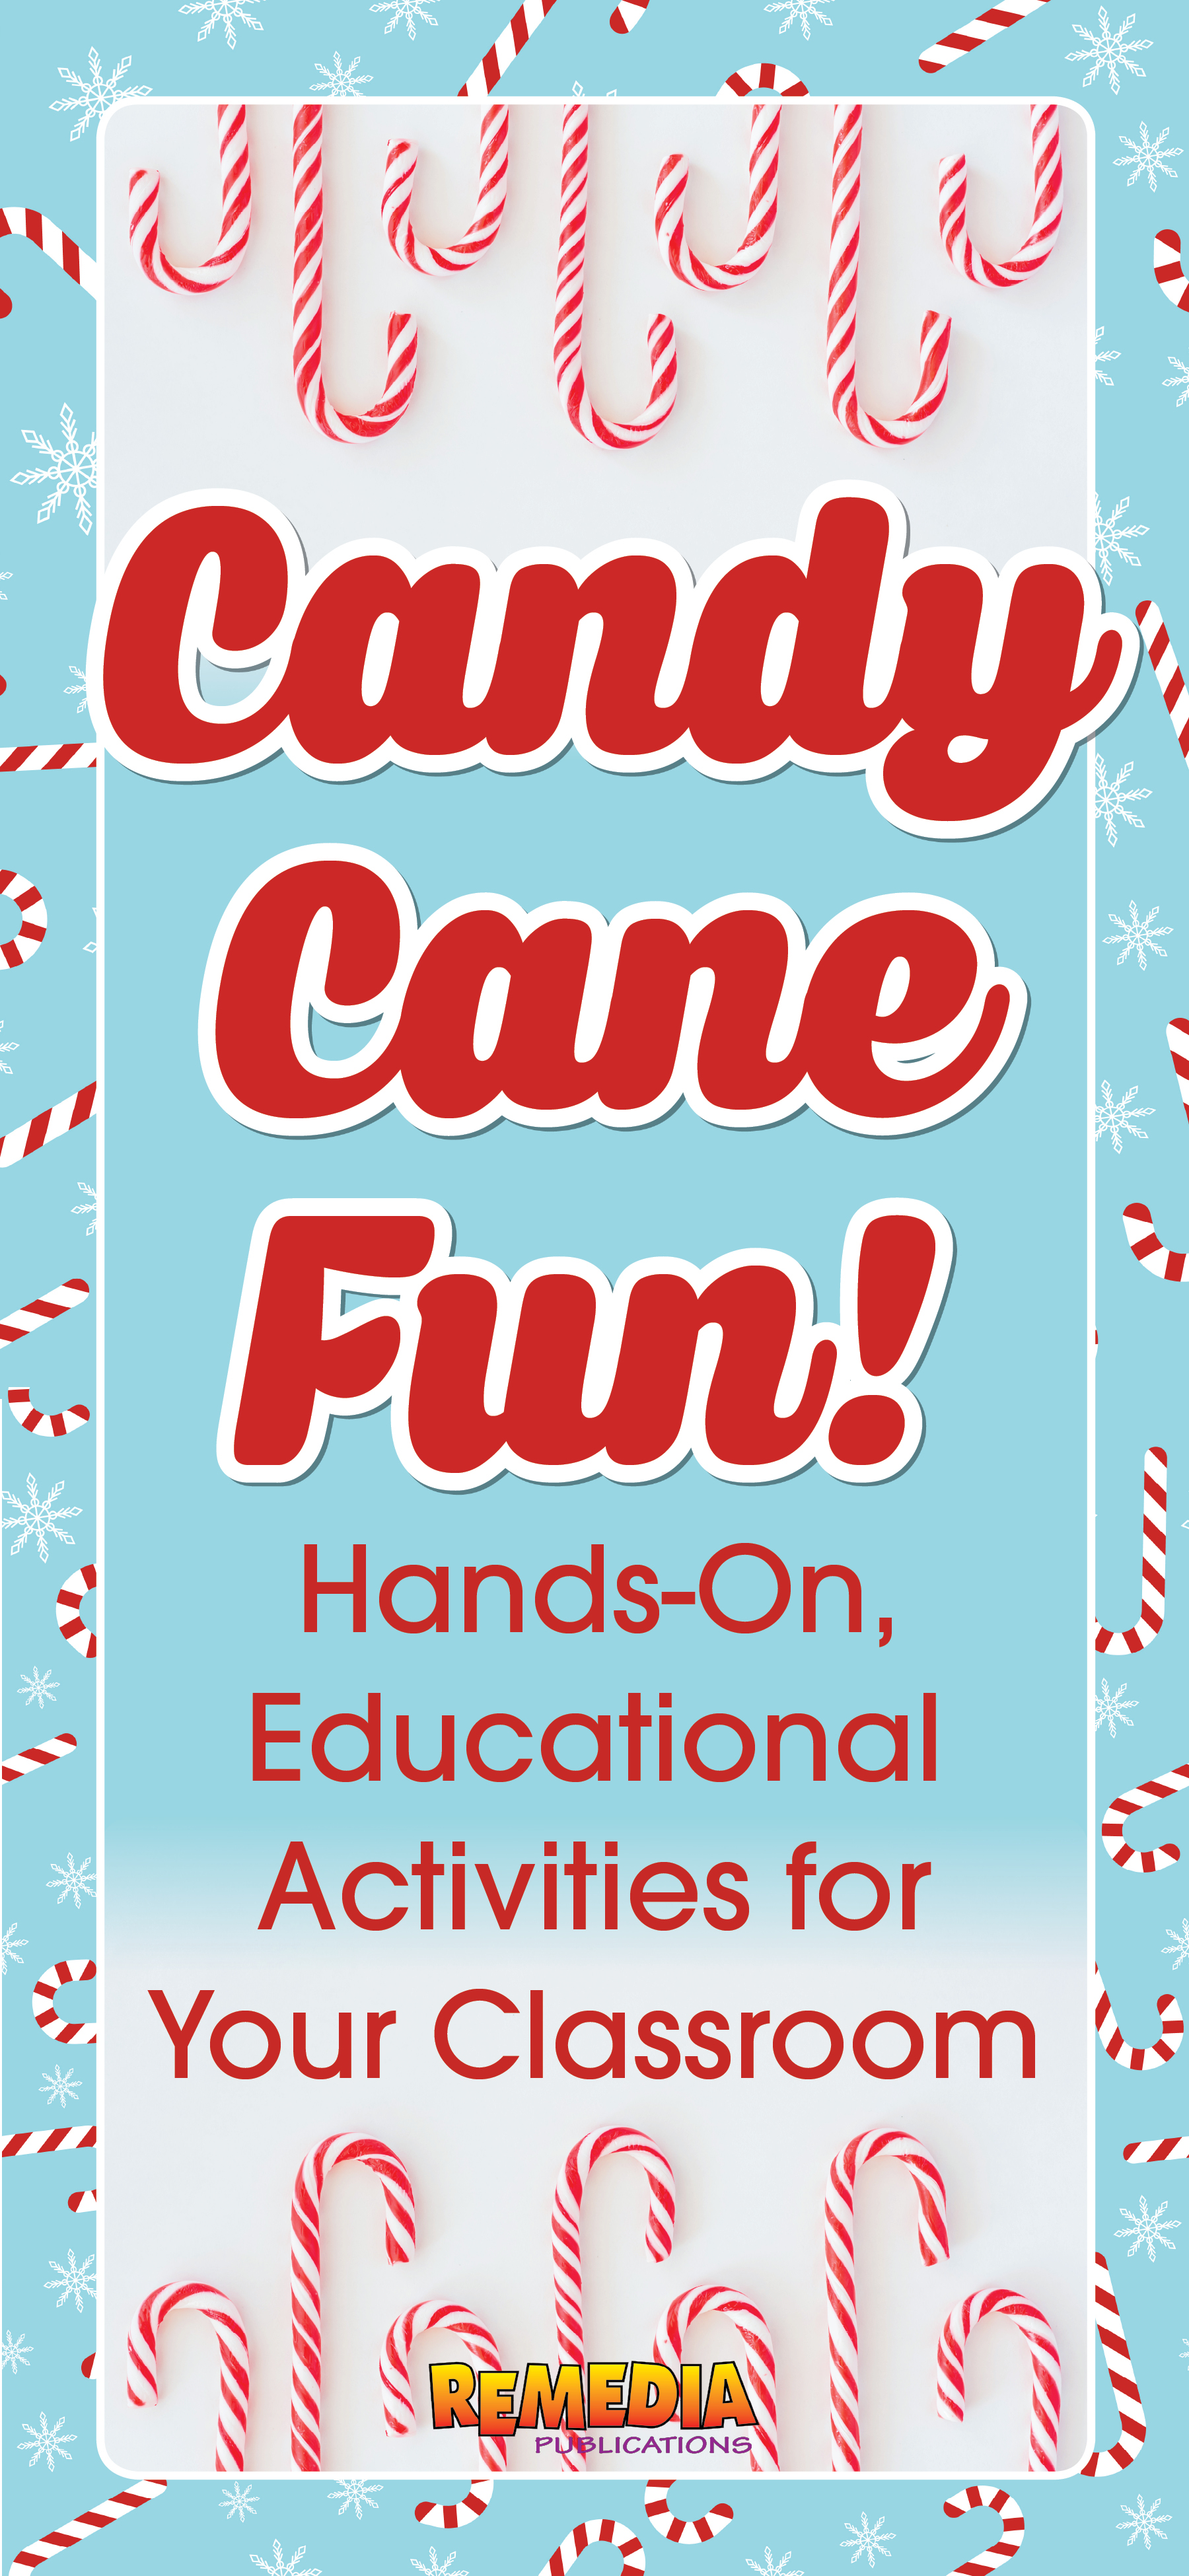 Educational & Tasty Candy Cane Activities | Remedia Publications